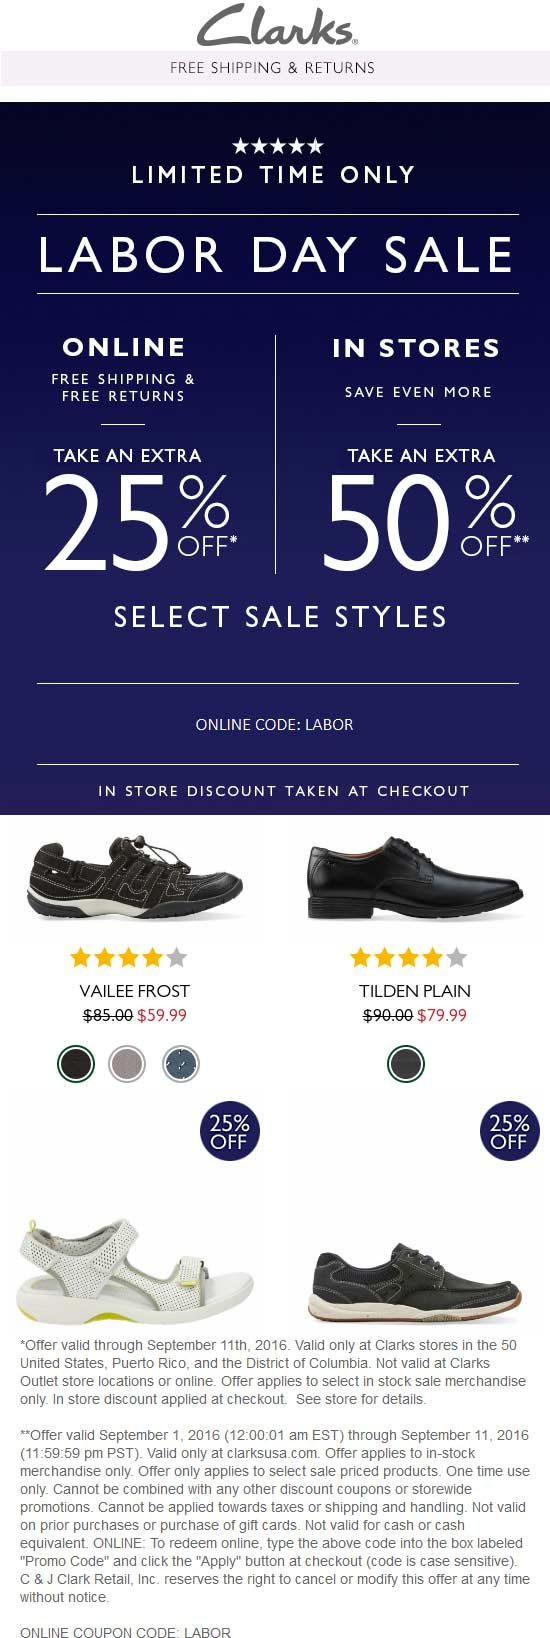 Clarks Coupon October 2018 Extra 50% off at Clarks, or 25% online via promo code LABOR